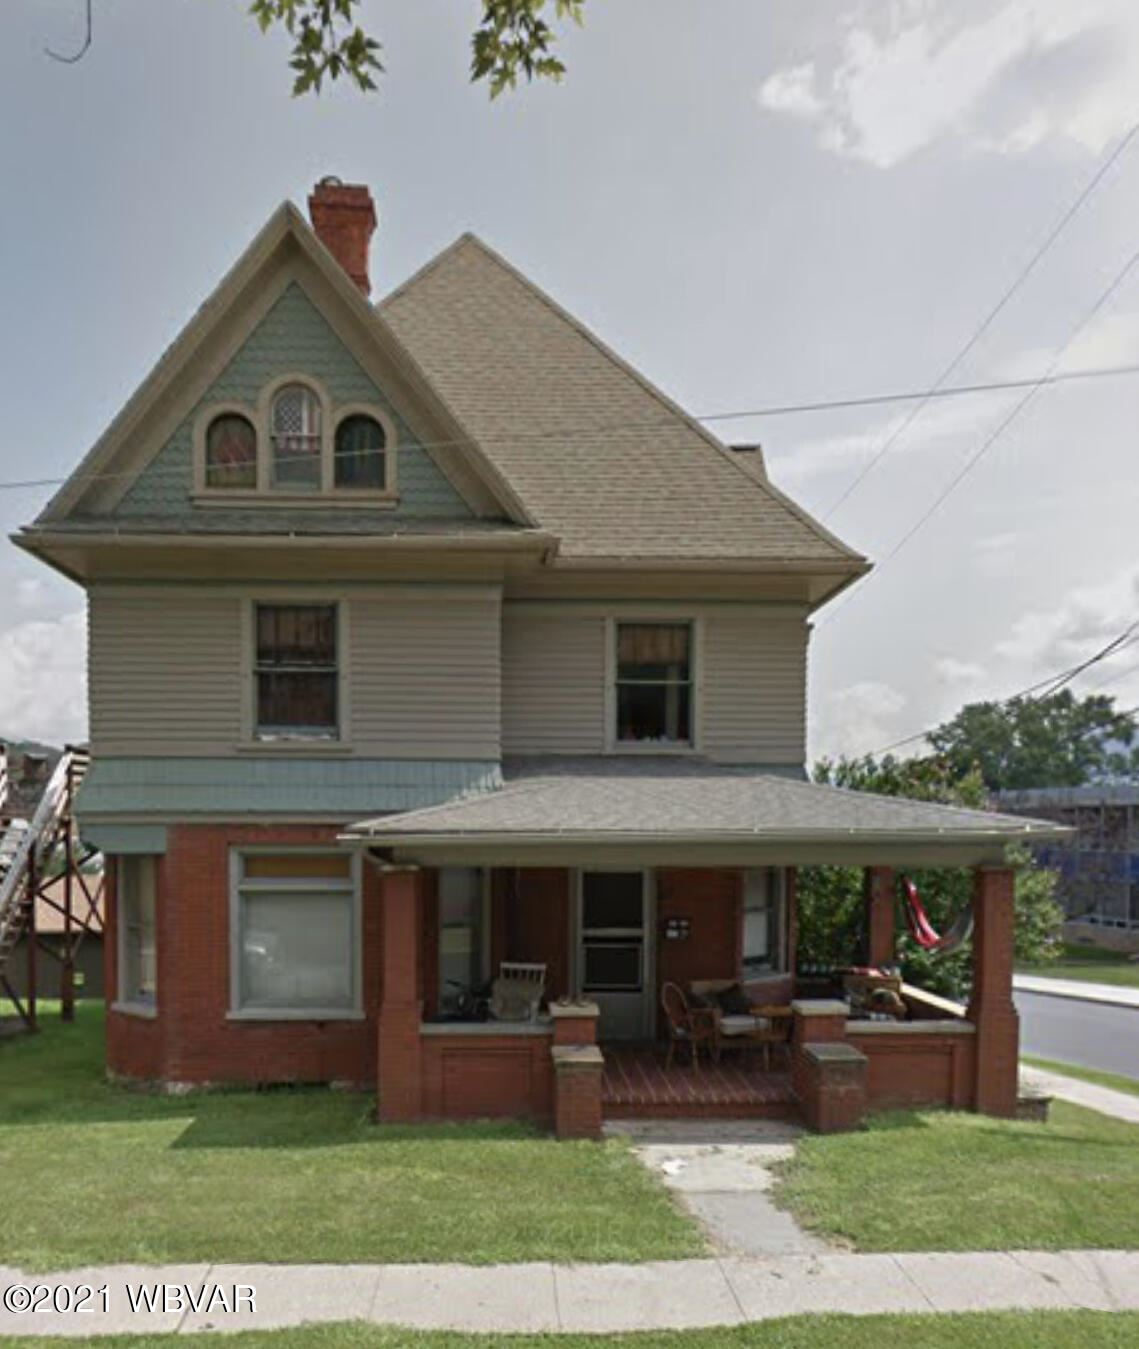 30 S FAIRVIEW STREET, Lock Haven, PA 17745 - #: WB-92041